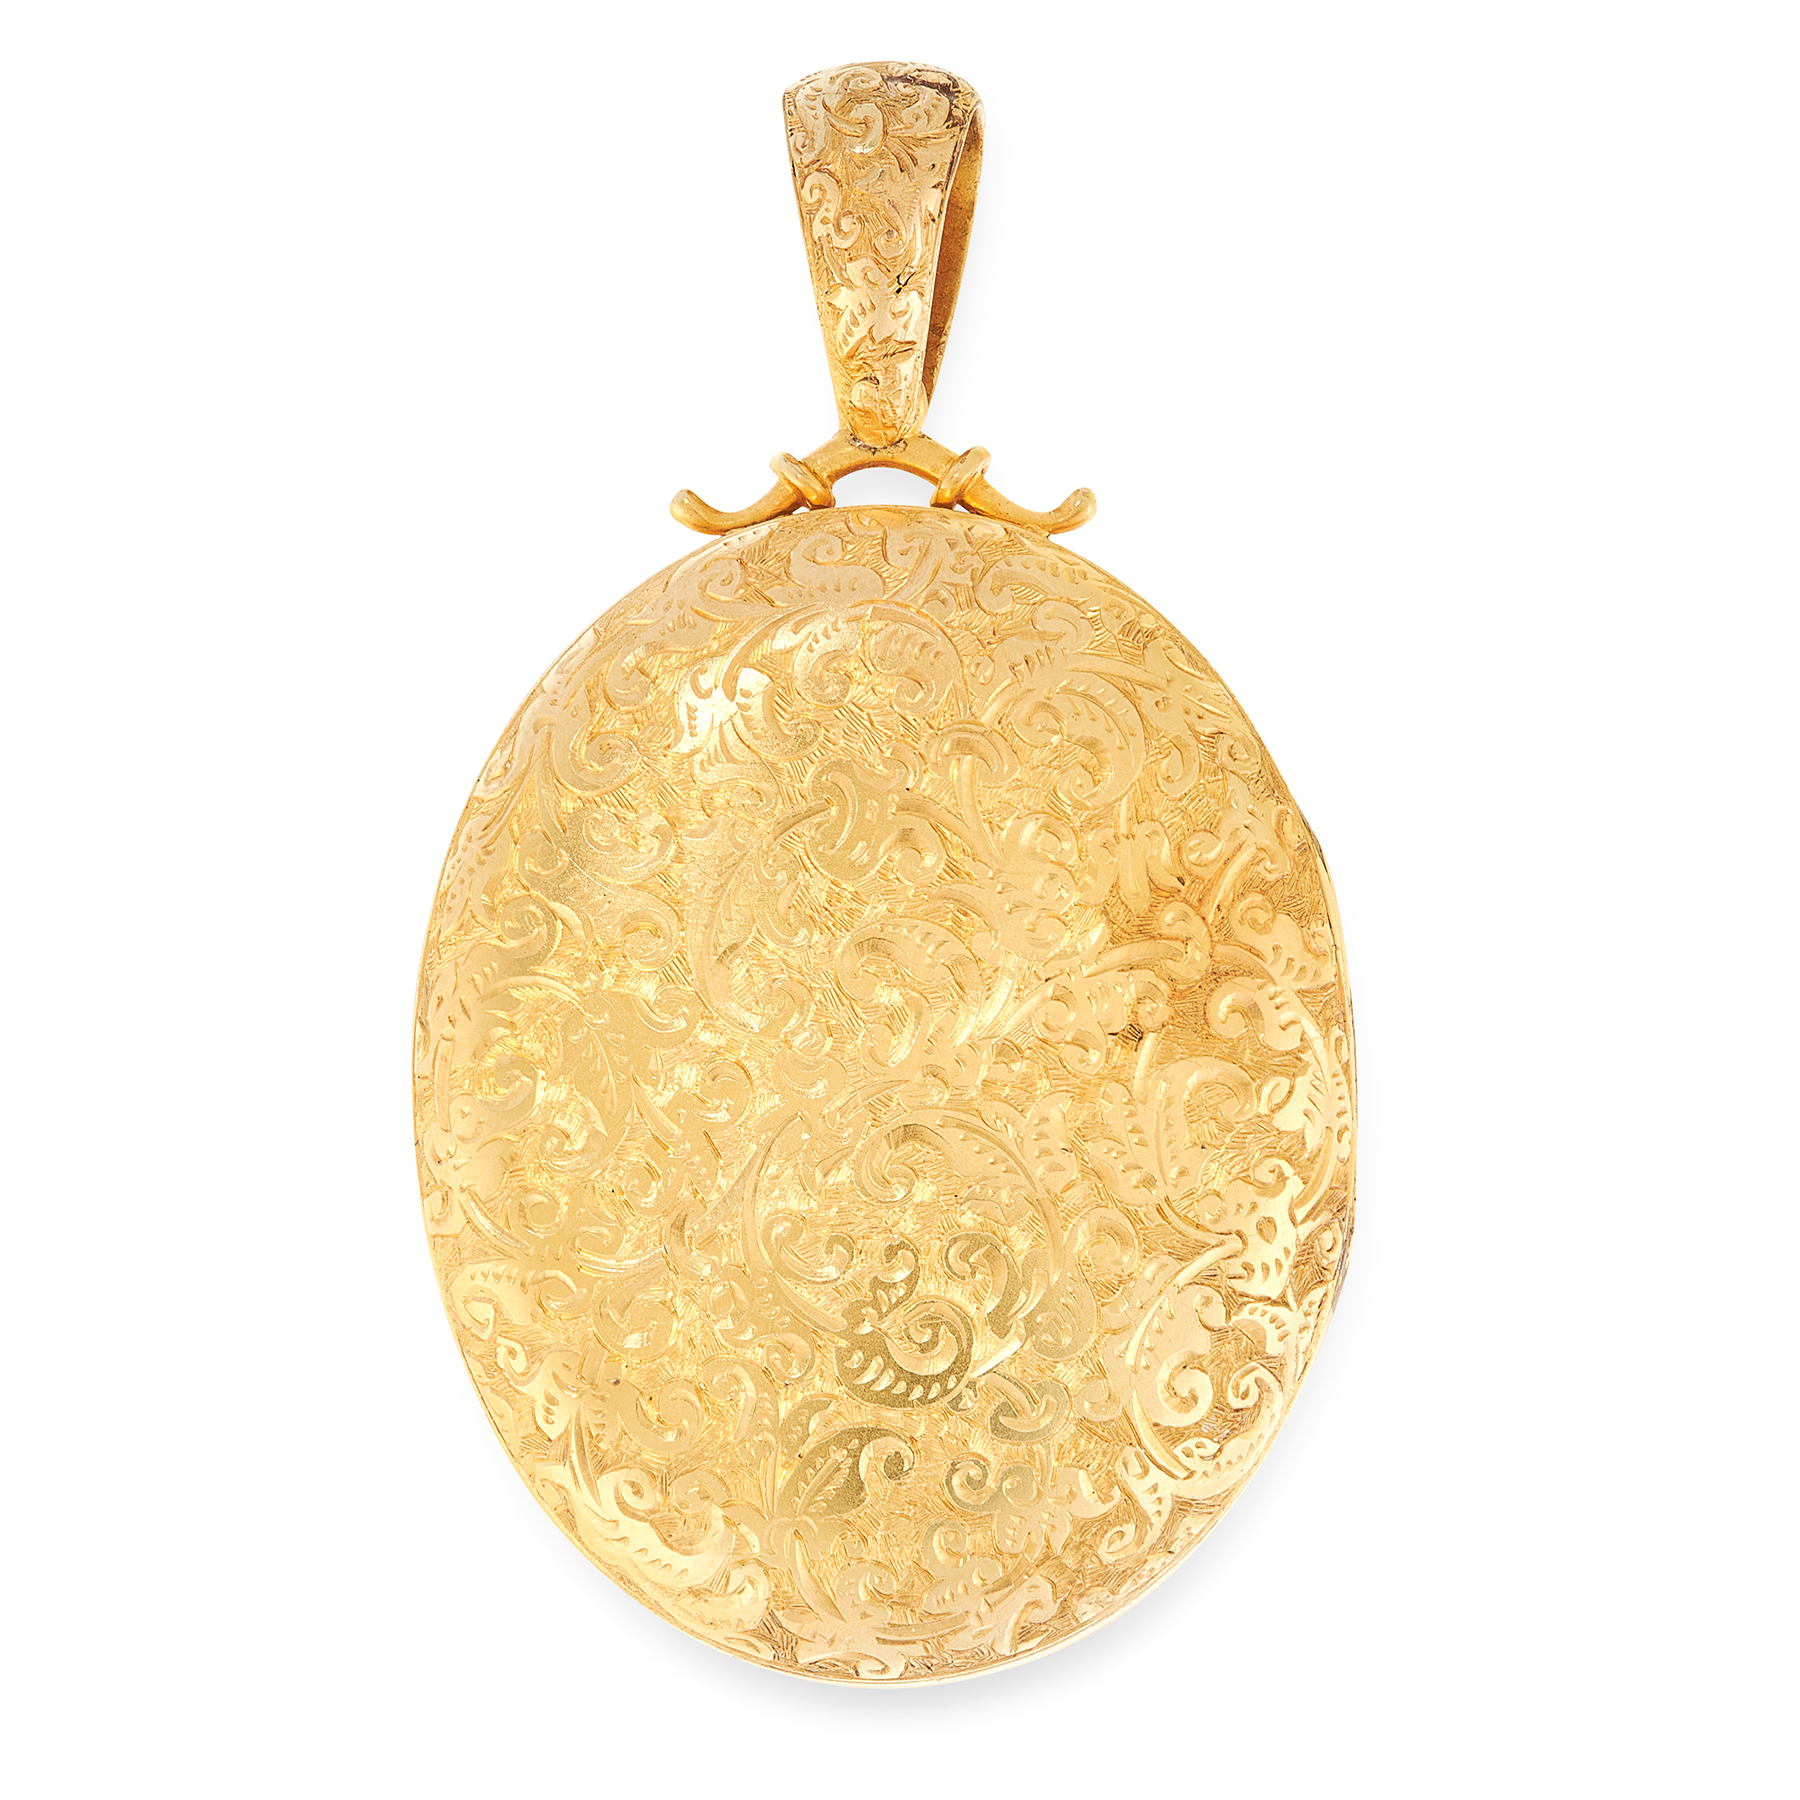 AN ANTIQUE HAIRWORK MOURNING LOCKET PENDANT, 19TH CENTURY in yellow gold, the oval hinged body - Image 2 of 2